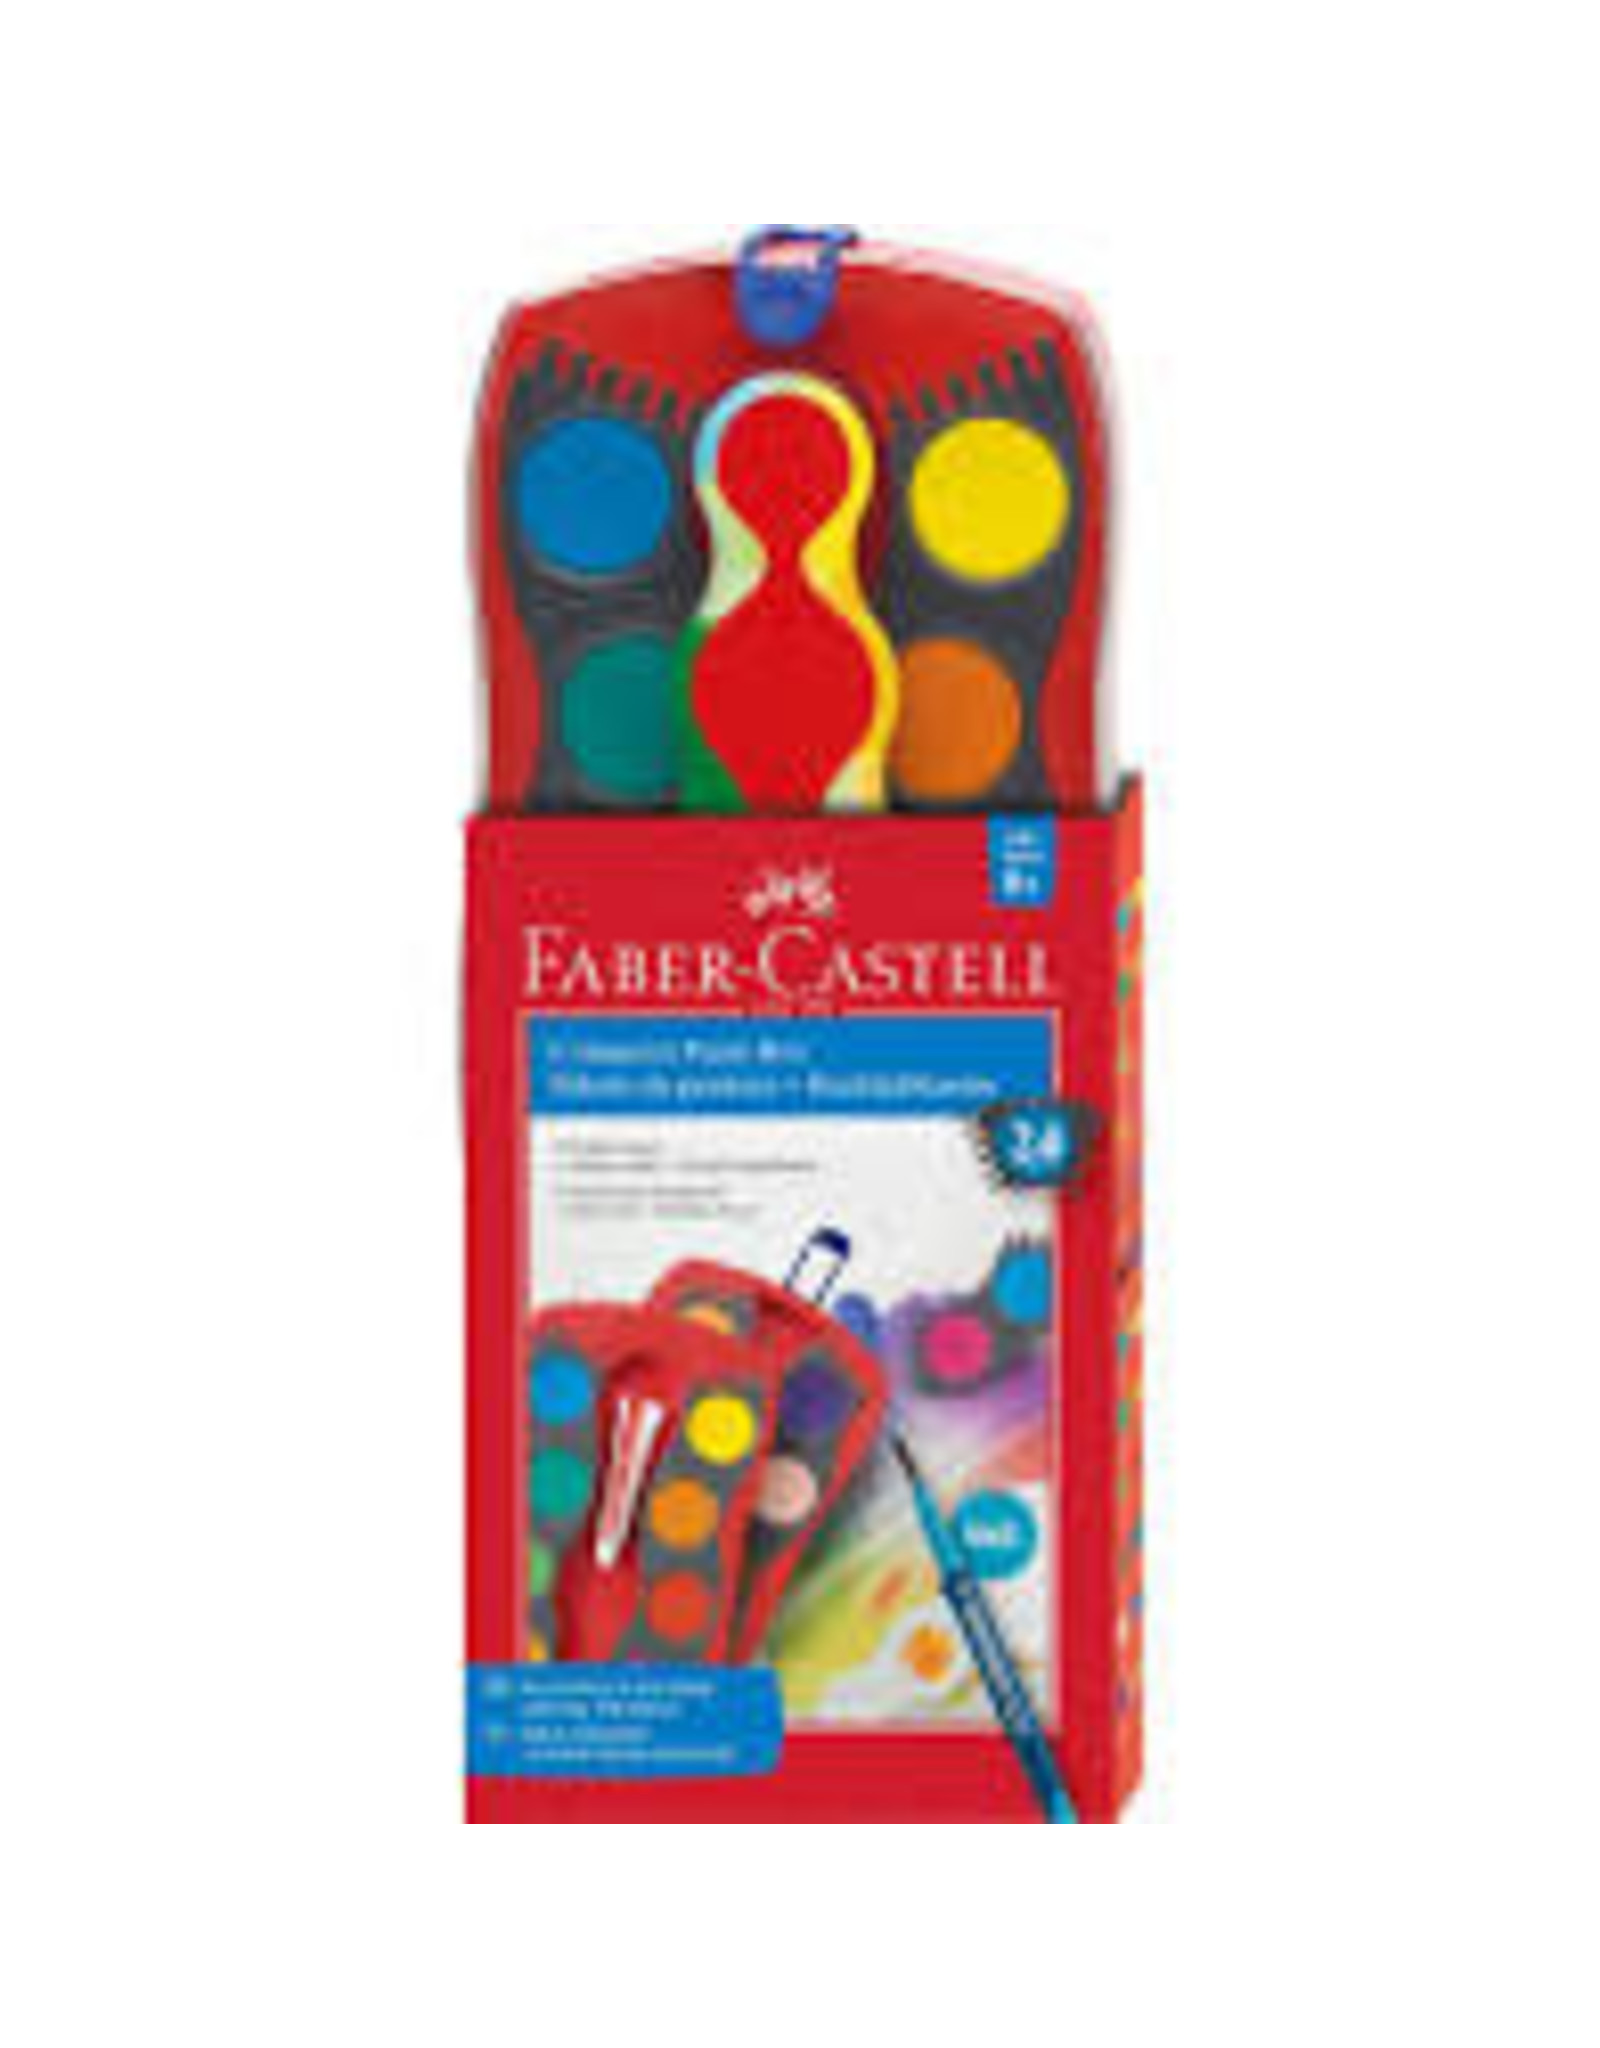 Faber Castell 12ct Connector Paint Box